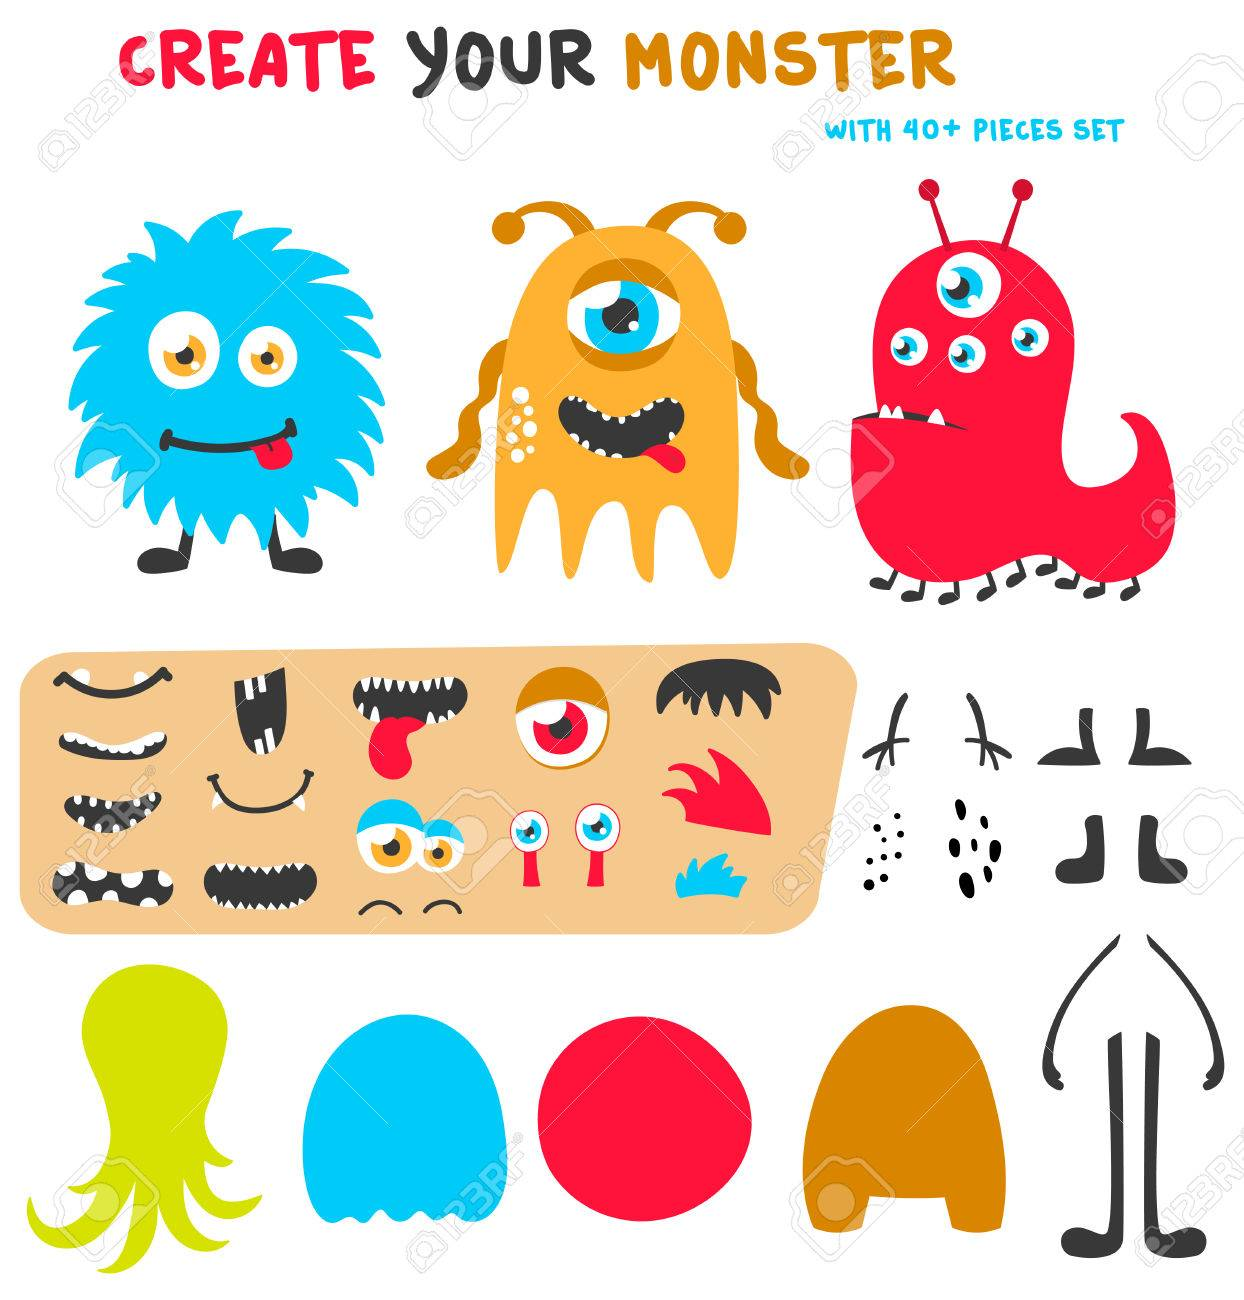 Cartoon funny monsters creation kit. Create your own monster...